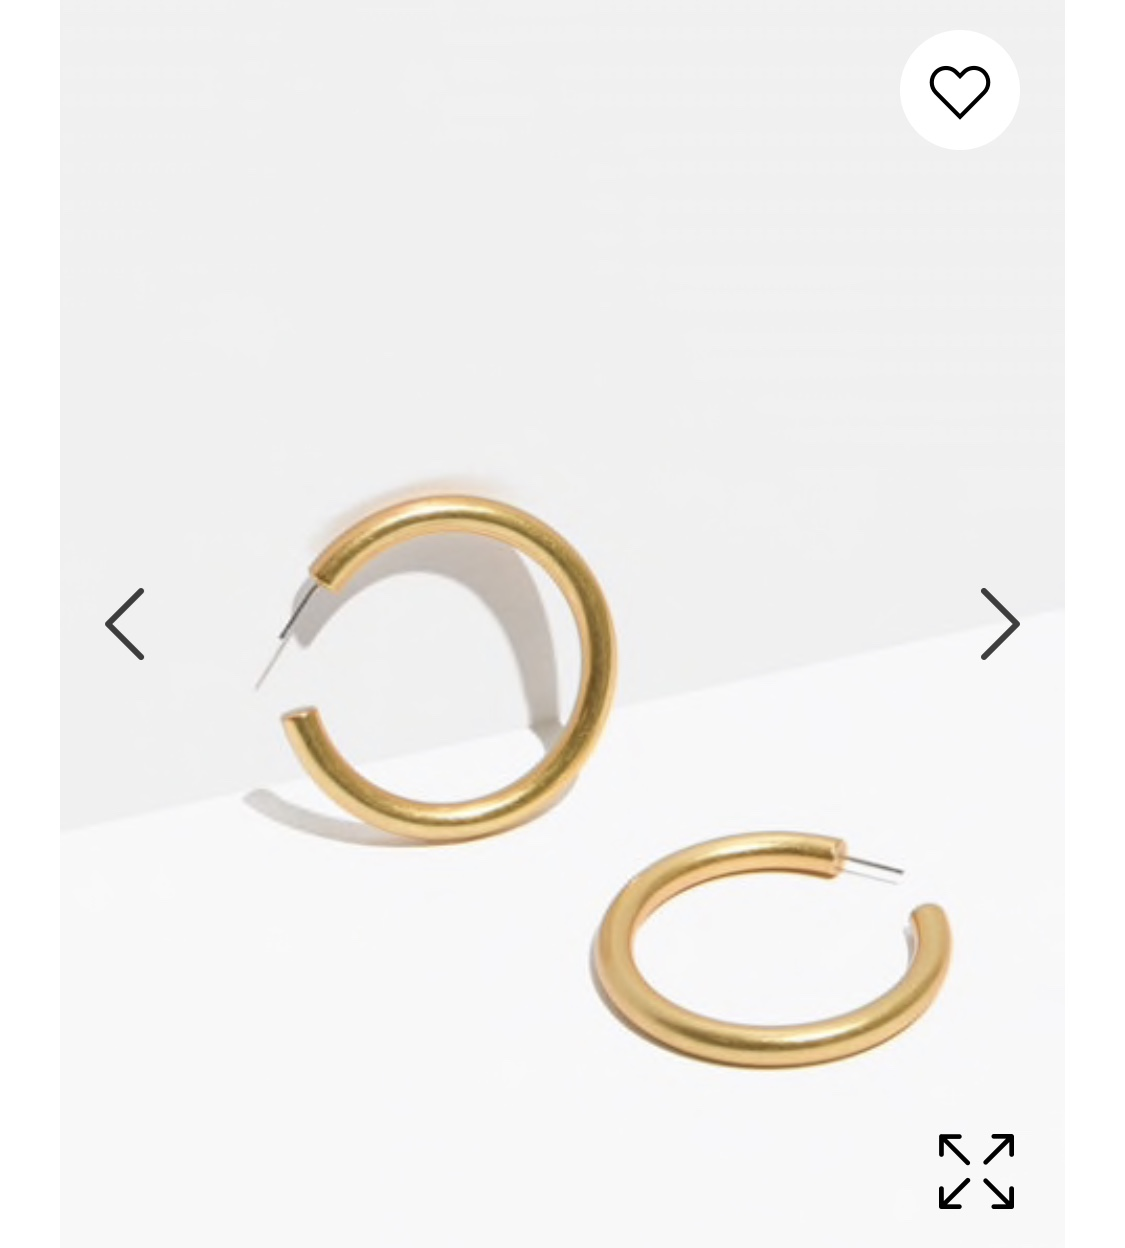 Gold Hoops, Madewell - Need I say more? Only $28, plus 25% with code VERYMERRY